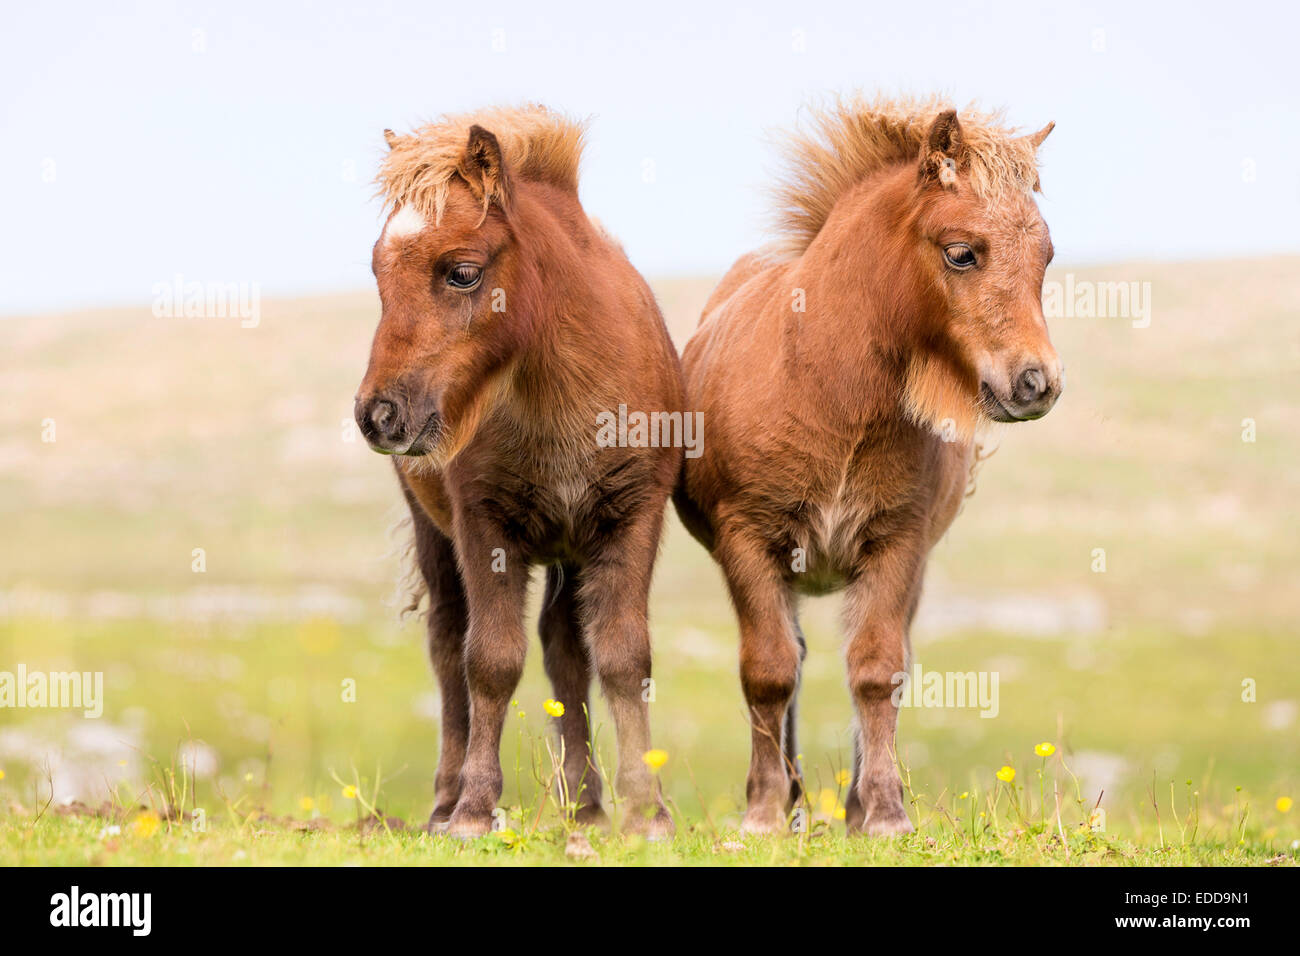 mini shetlandpony stockfotos mini shetlandpony bilder seite 3 alamy. Black Bedroom Furniture Sets. Home Design Ideas